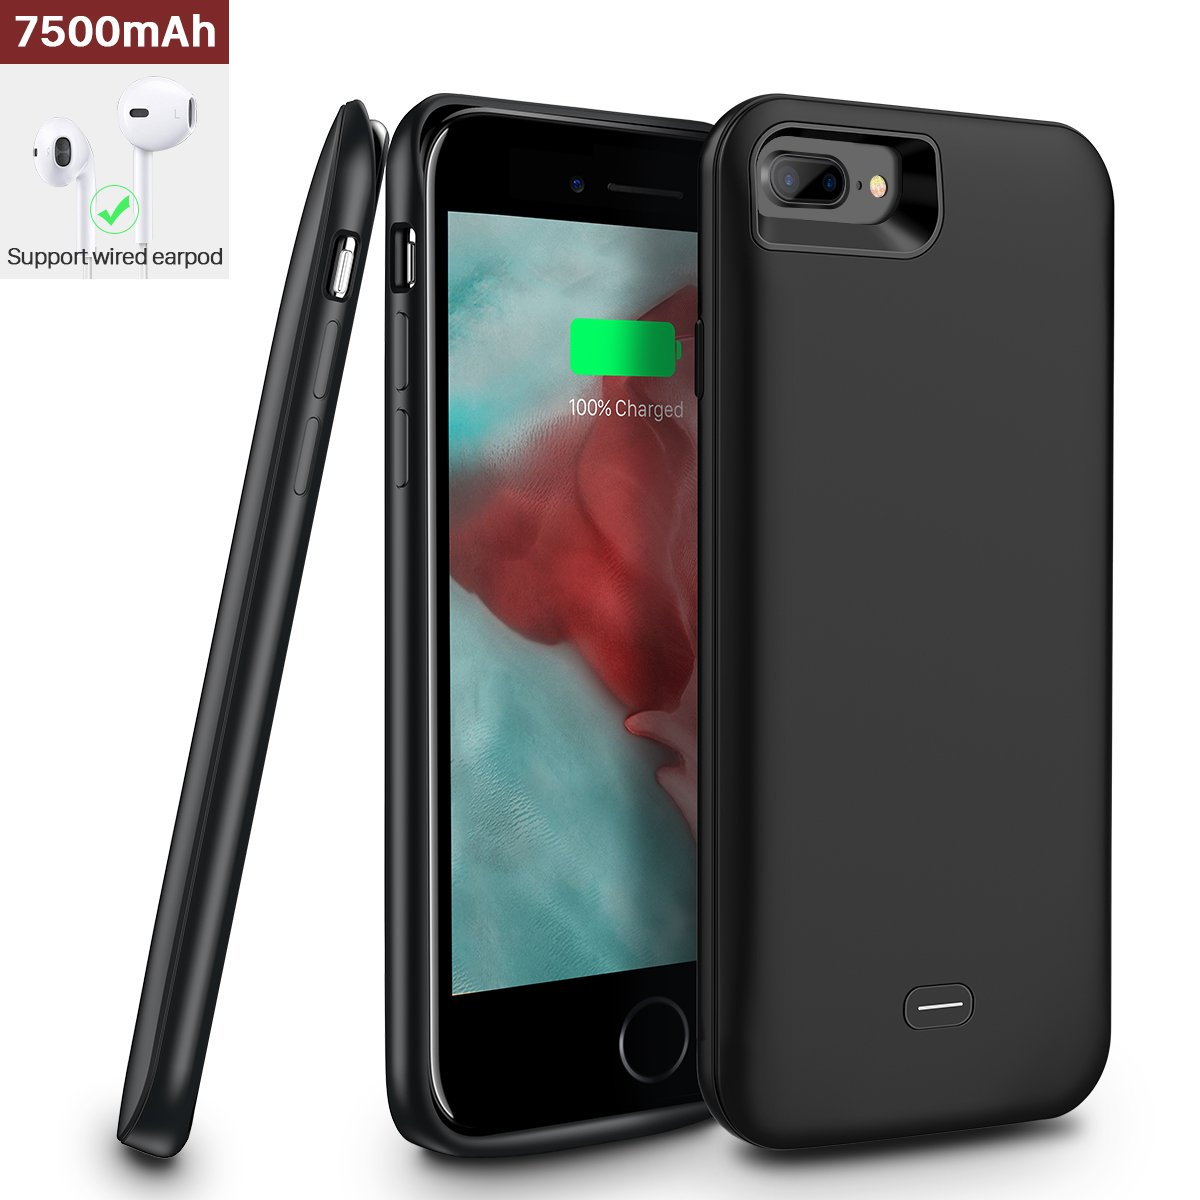 iphone 7 Plus/iphone 8 Plus Battery Case,[7500mAh] iphone 7 Plus/8 Plus protective battery case,Portable Rechargeable Protective Charging Case Slim for Apple iphone 7/8 Plus,Support Lightning Earphone